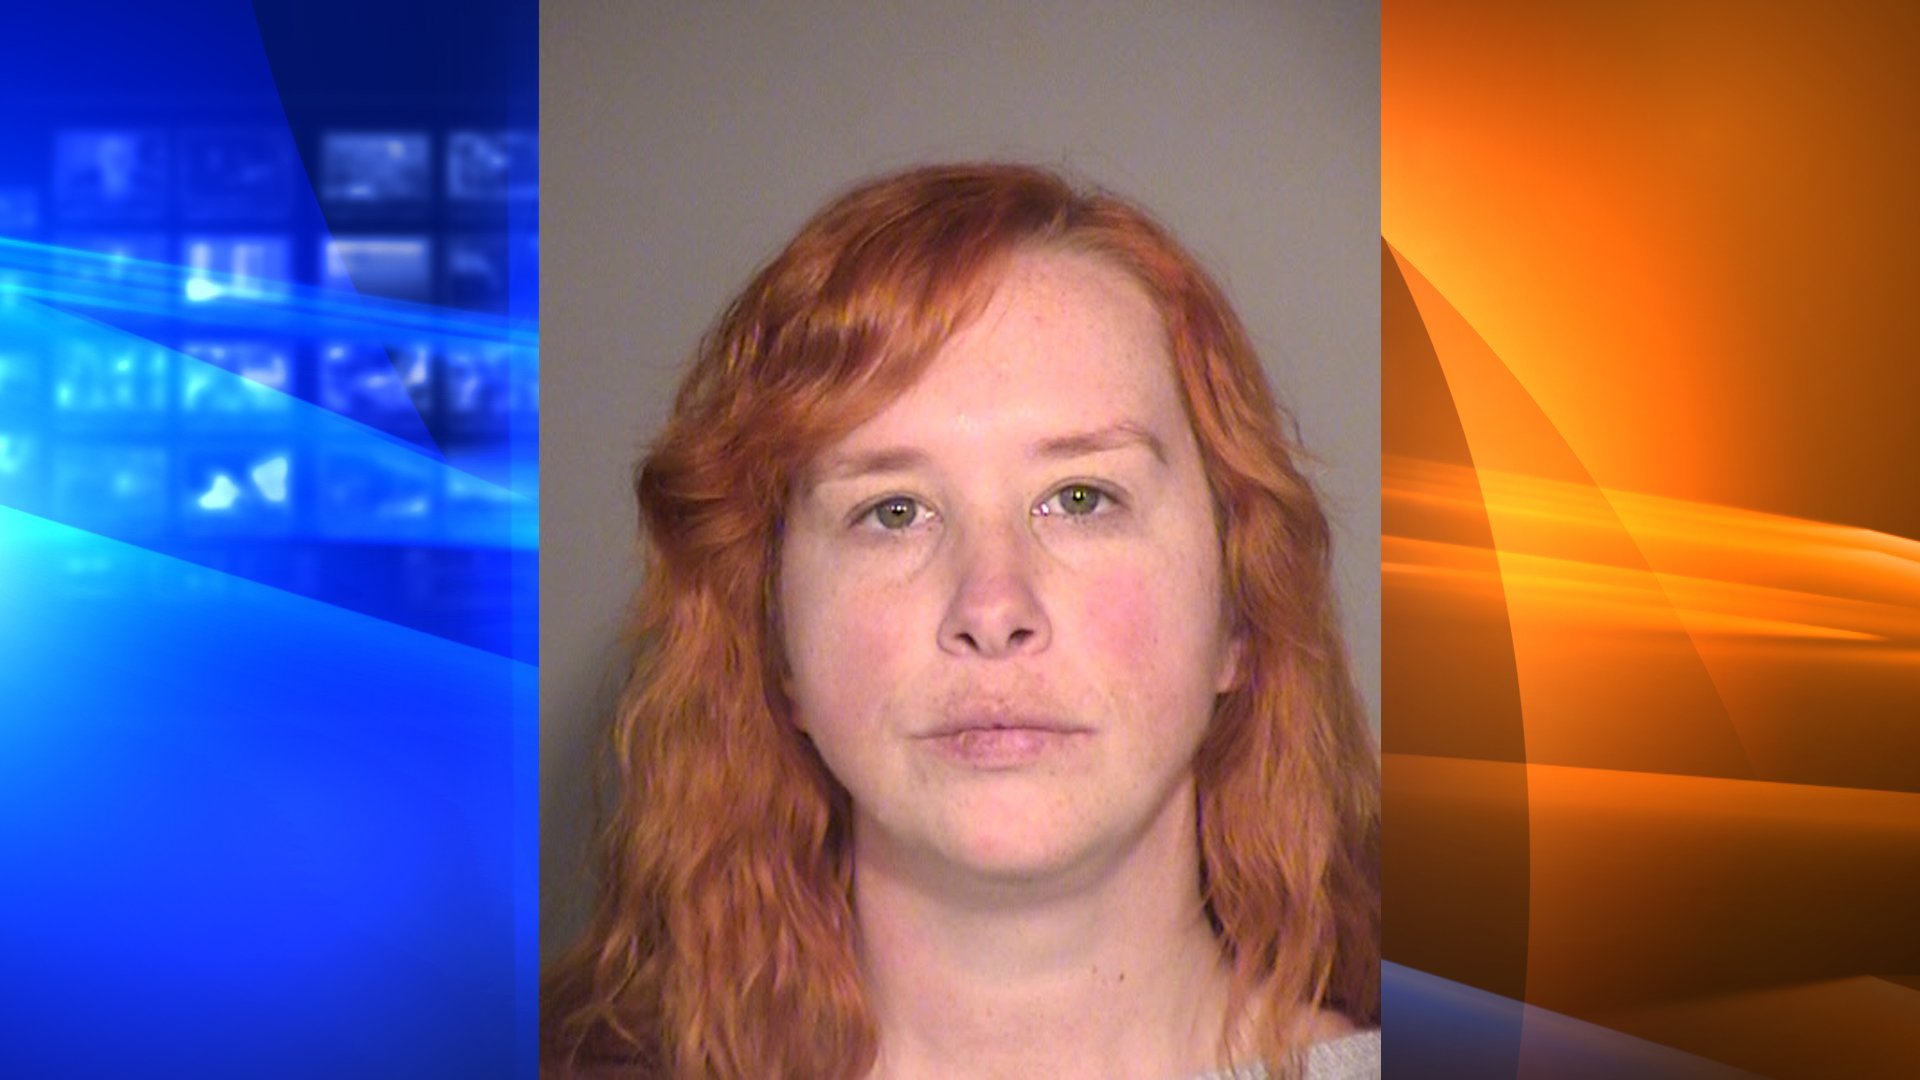 Kristina Vargas is shown in a photo released by the Ventura County Sheriff's Office on Jan. 9, 2020.